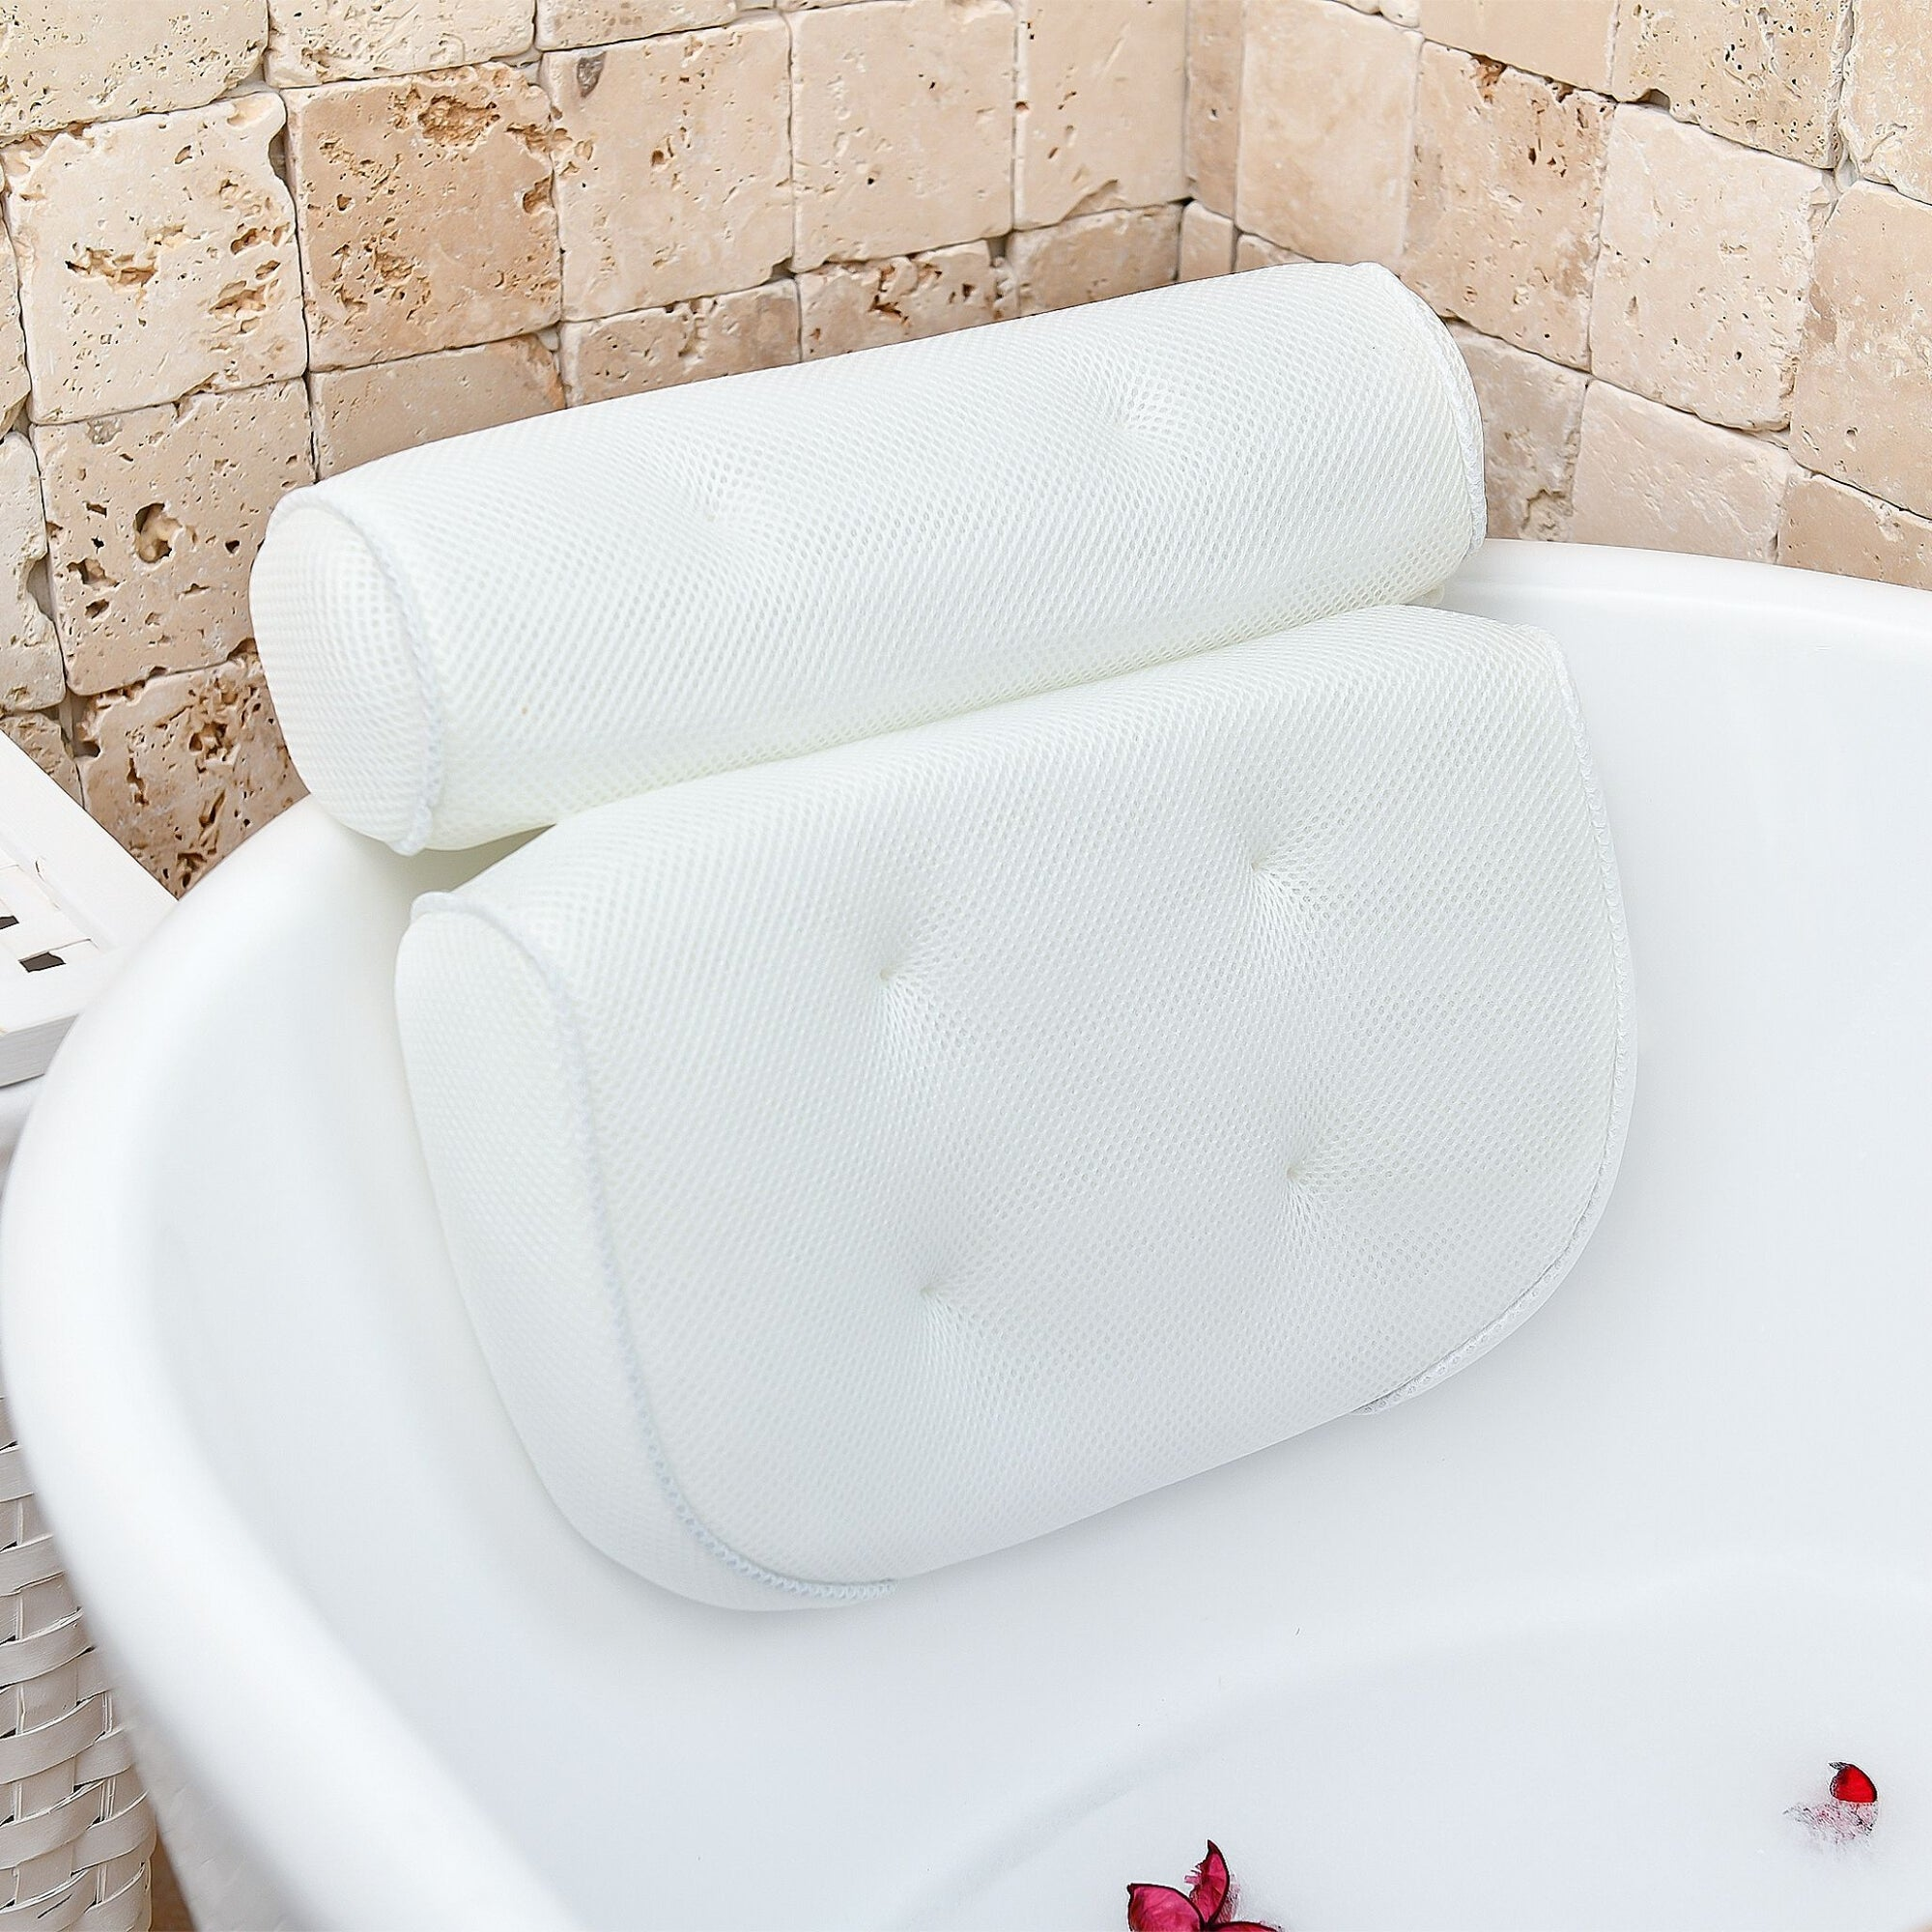 Luxury at home spa bath pillow for tub